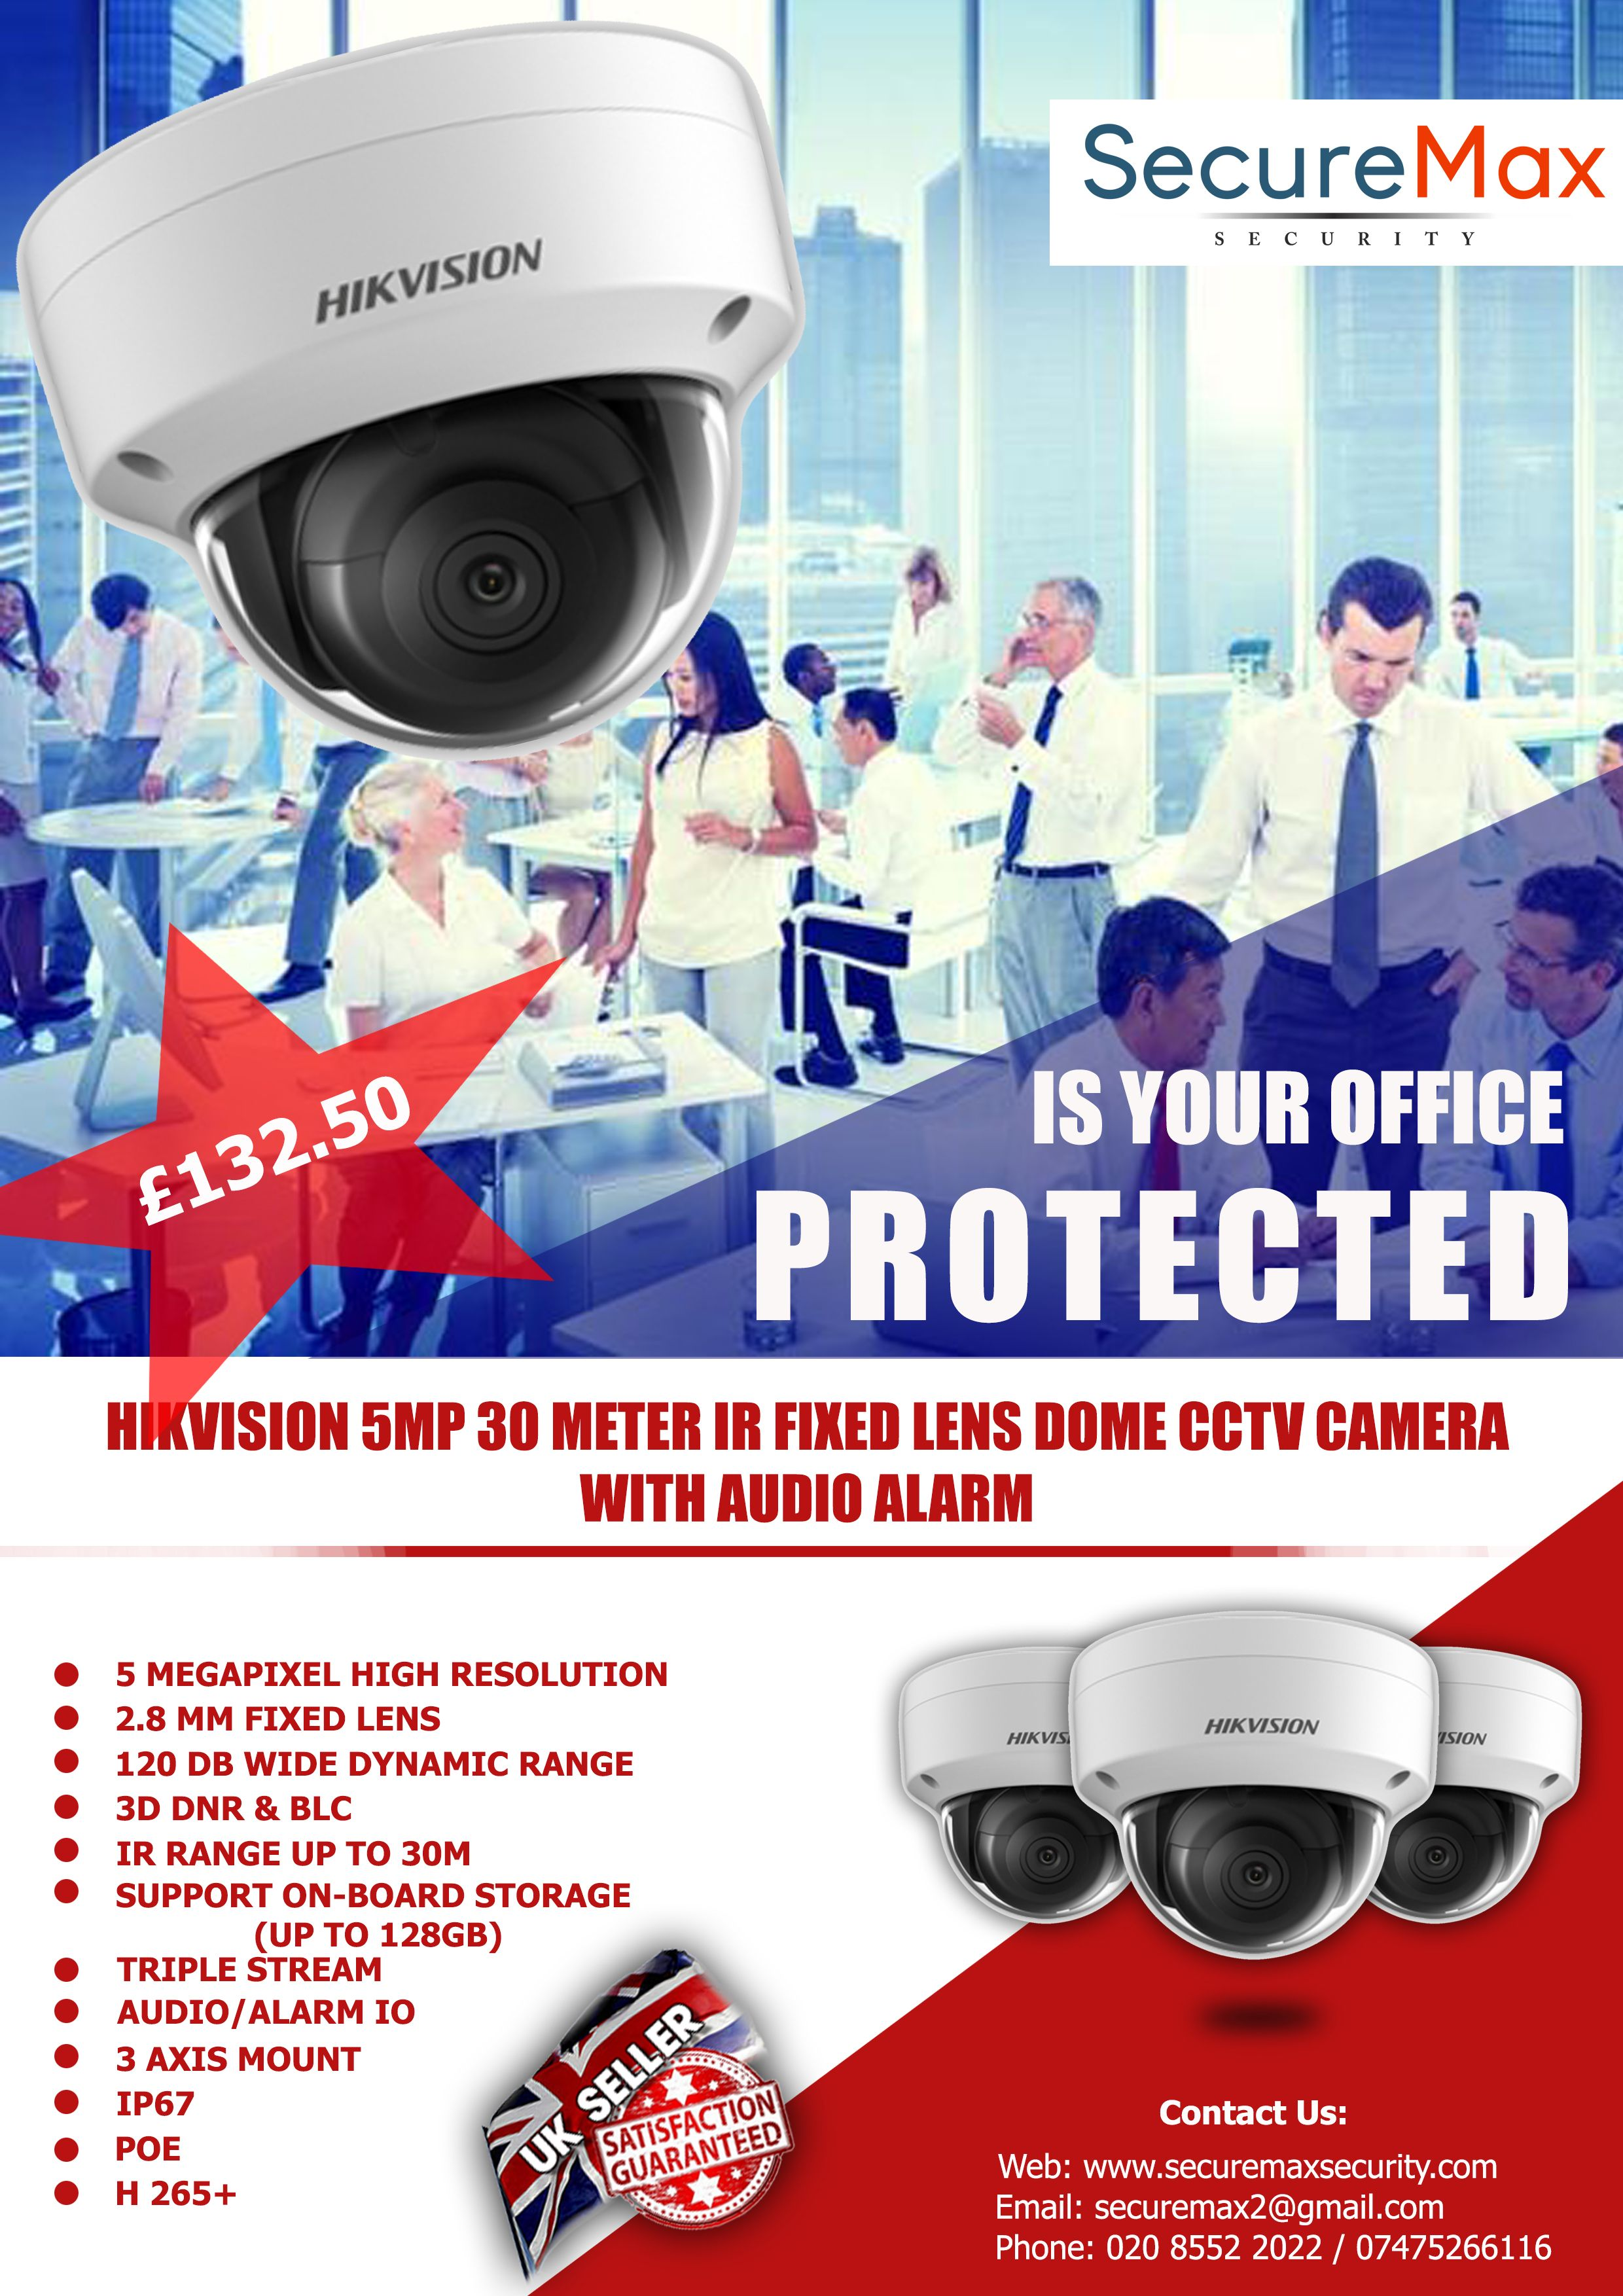 Hikvision 5 Megapixel Dome Cctv Camera With Audio Alarm Cctv Camera Security Camera Installation Cctv Surveillance